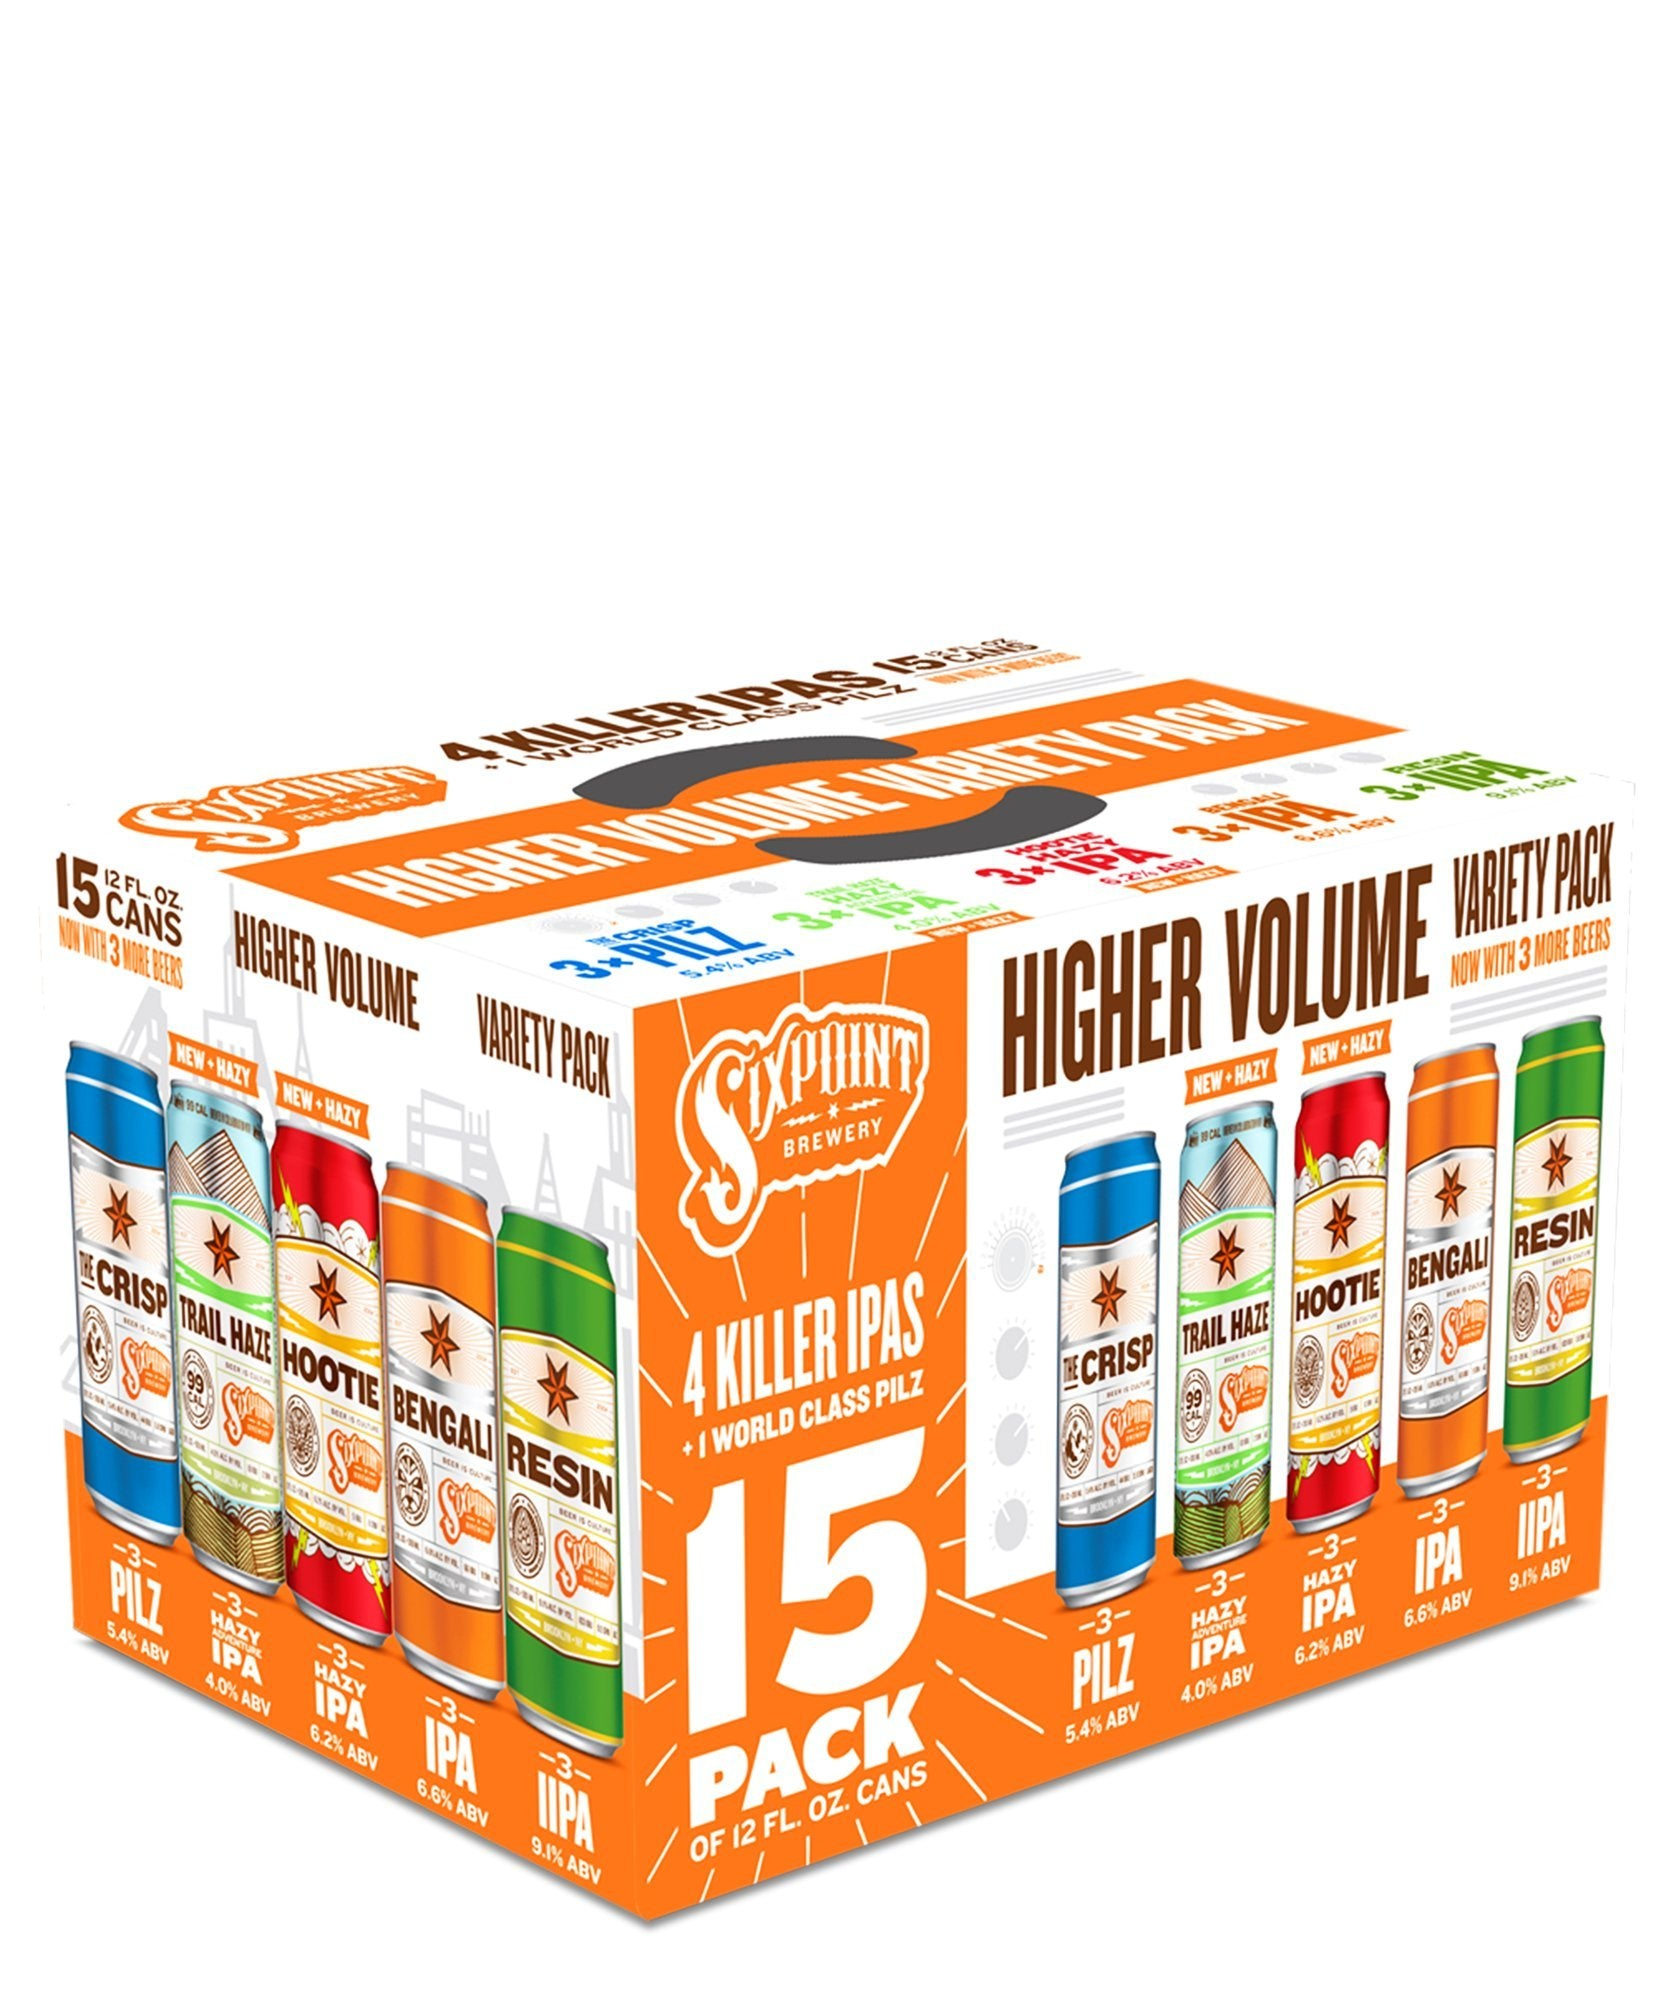 Higher Volume - Sixpoint Brewery Delivered By TapRm